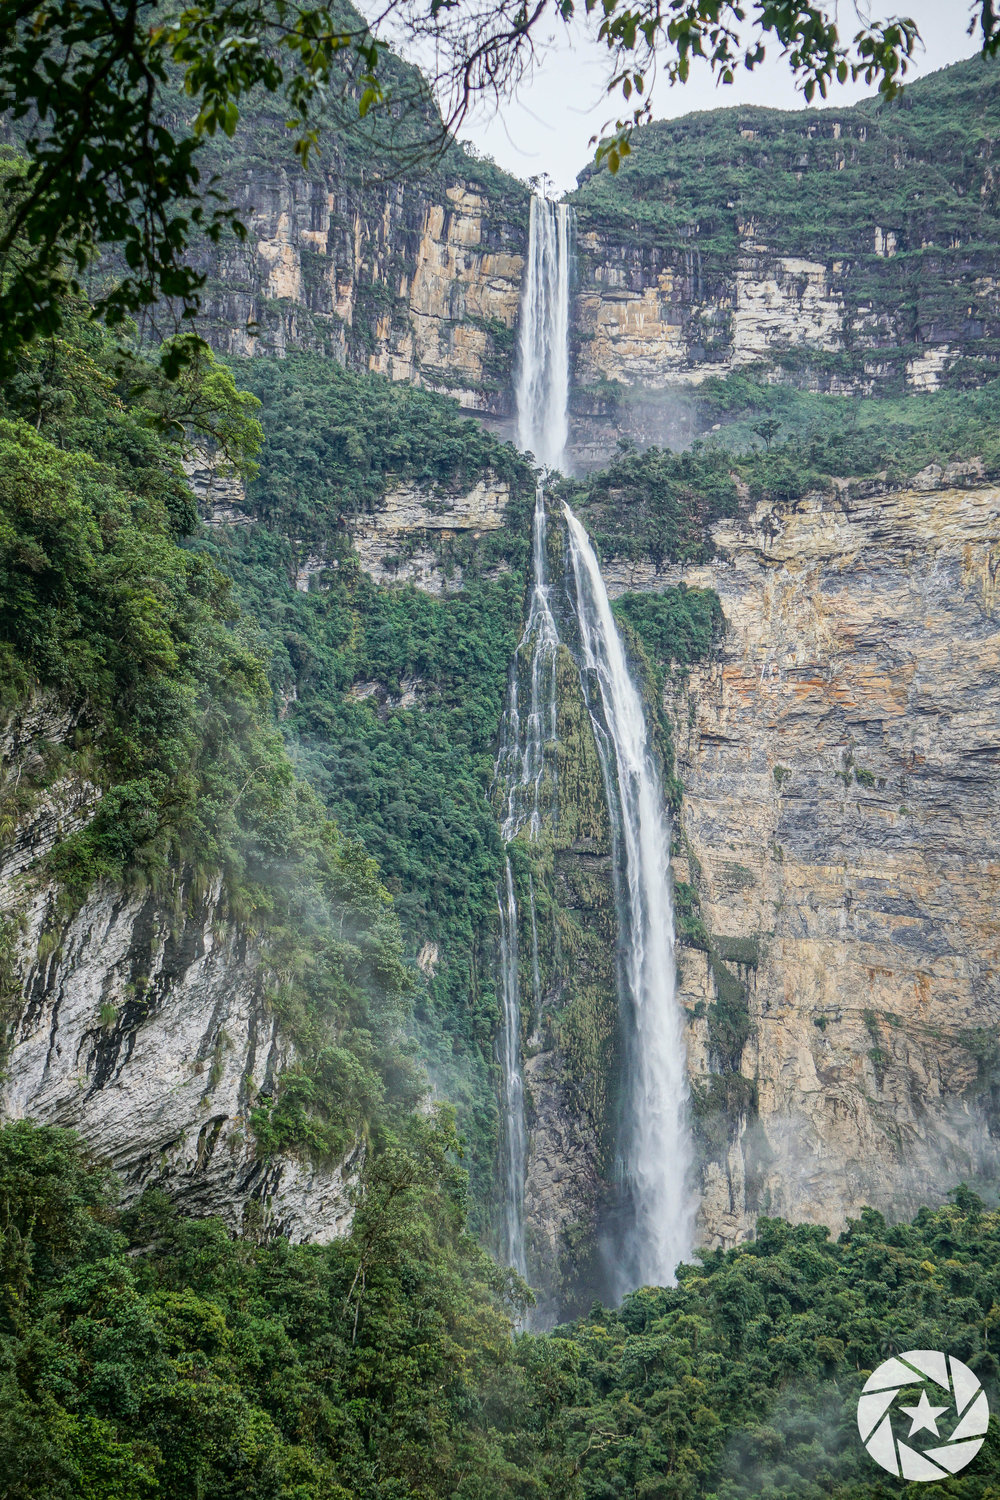 Gocta Watefall near Chachapoyas in Northern Peru